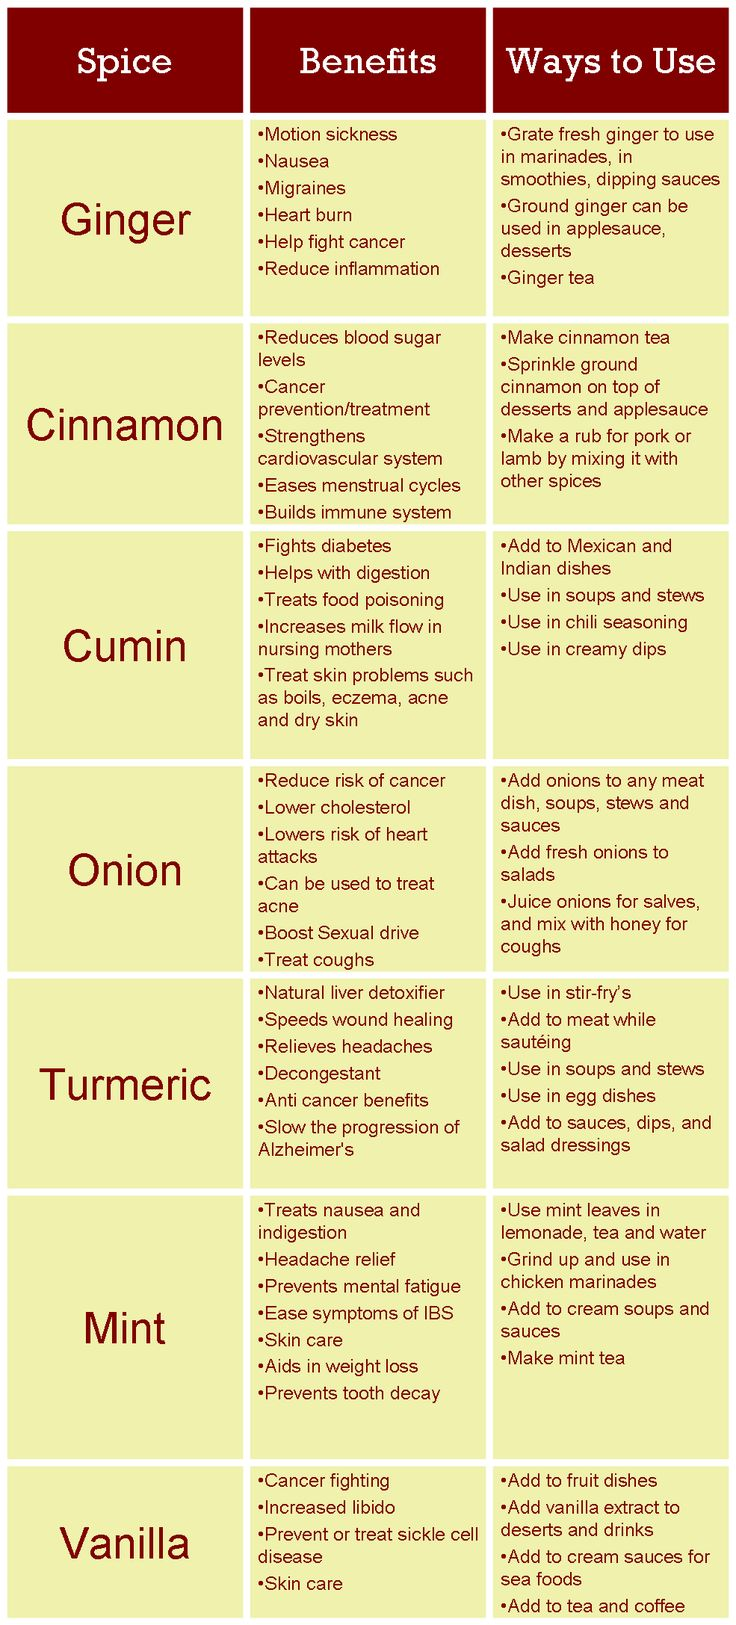 Healing Spices chart: How #Spices can Improve your #Health. Cinnamon, Ginger, Cumin, etc. #FranticMama